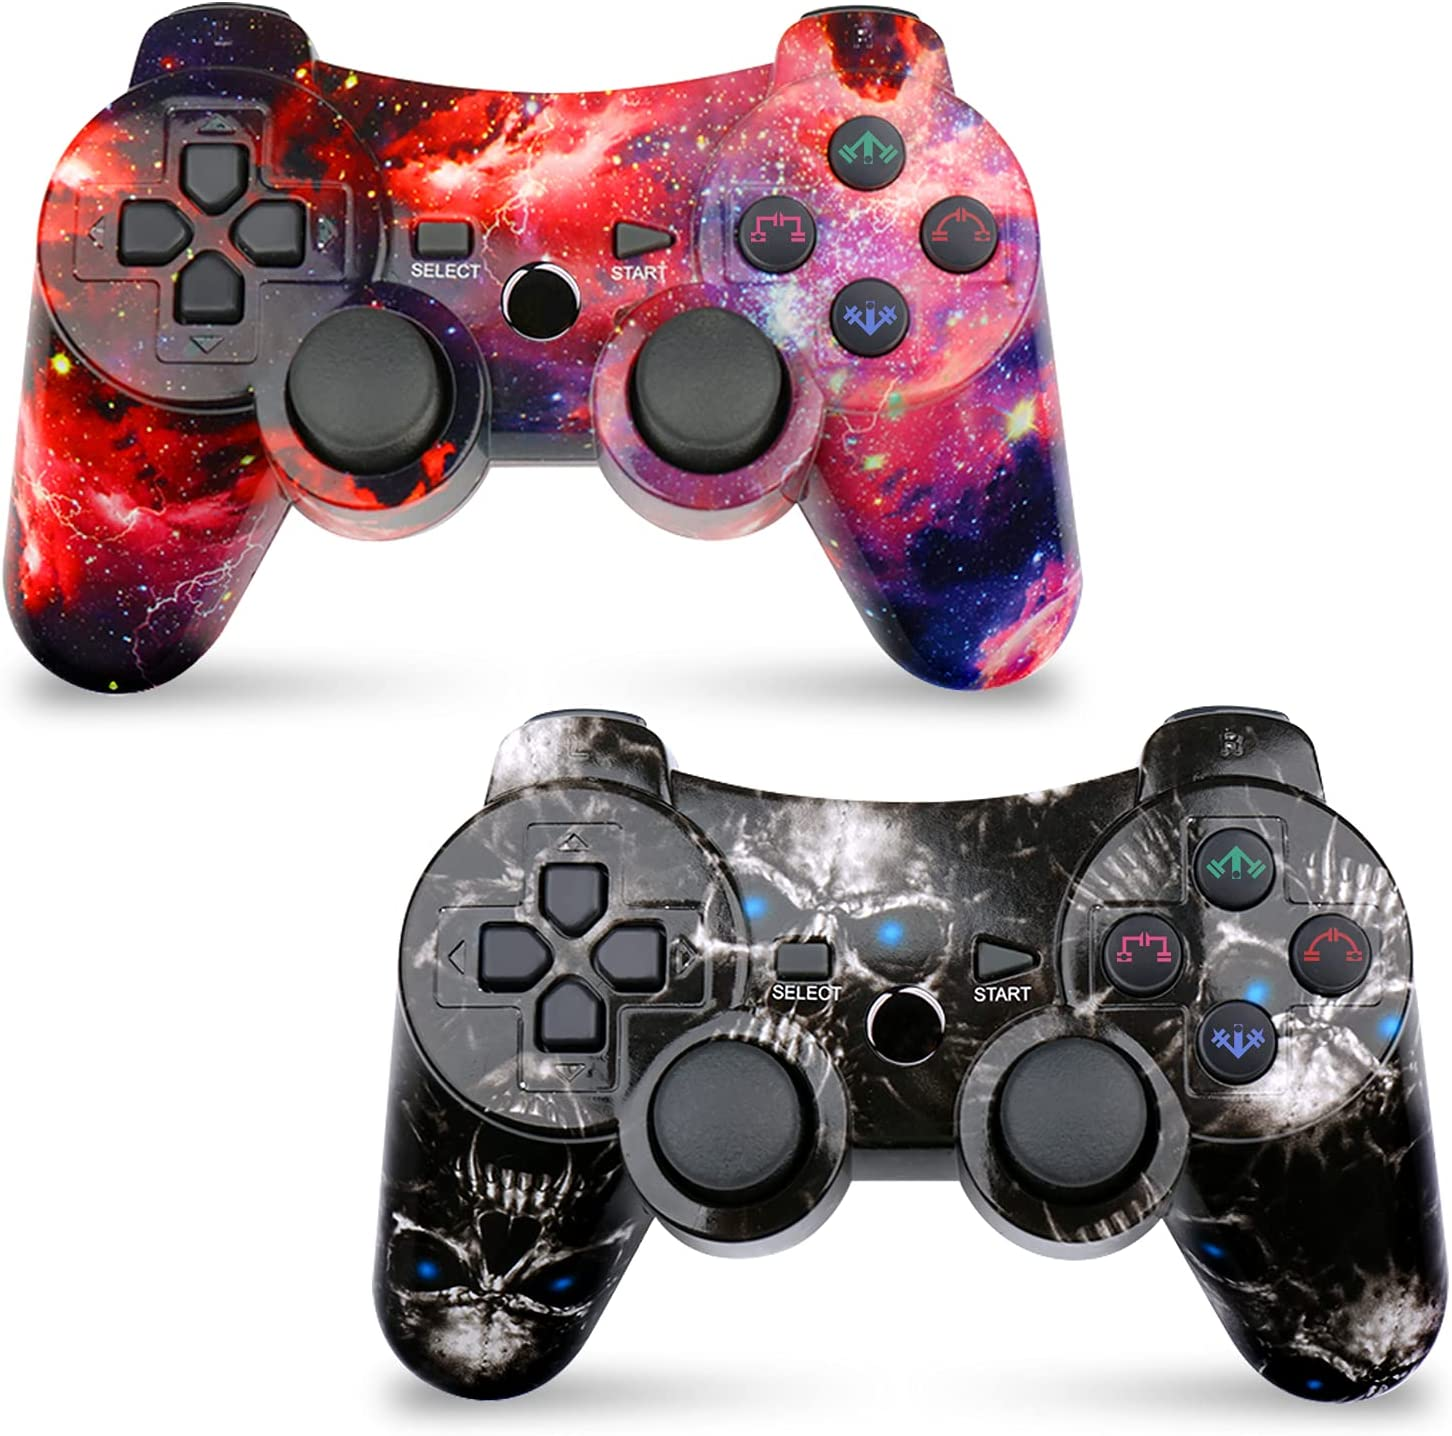 Max 65% OFF CHENGDAO shopping Wireless Controller 2 with Compatible Playstation Pack